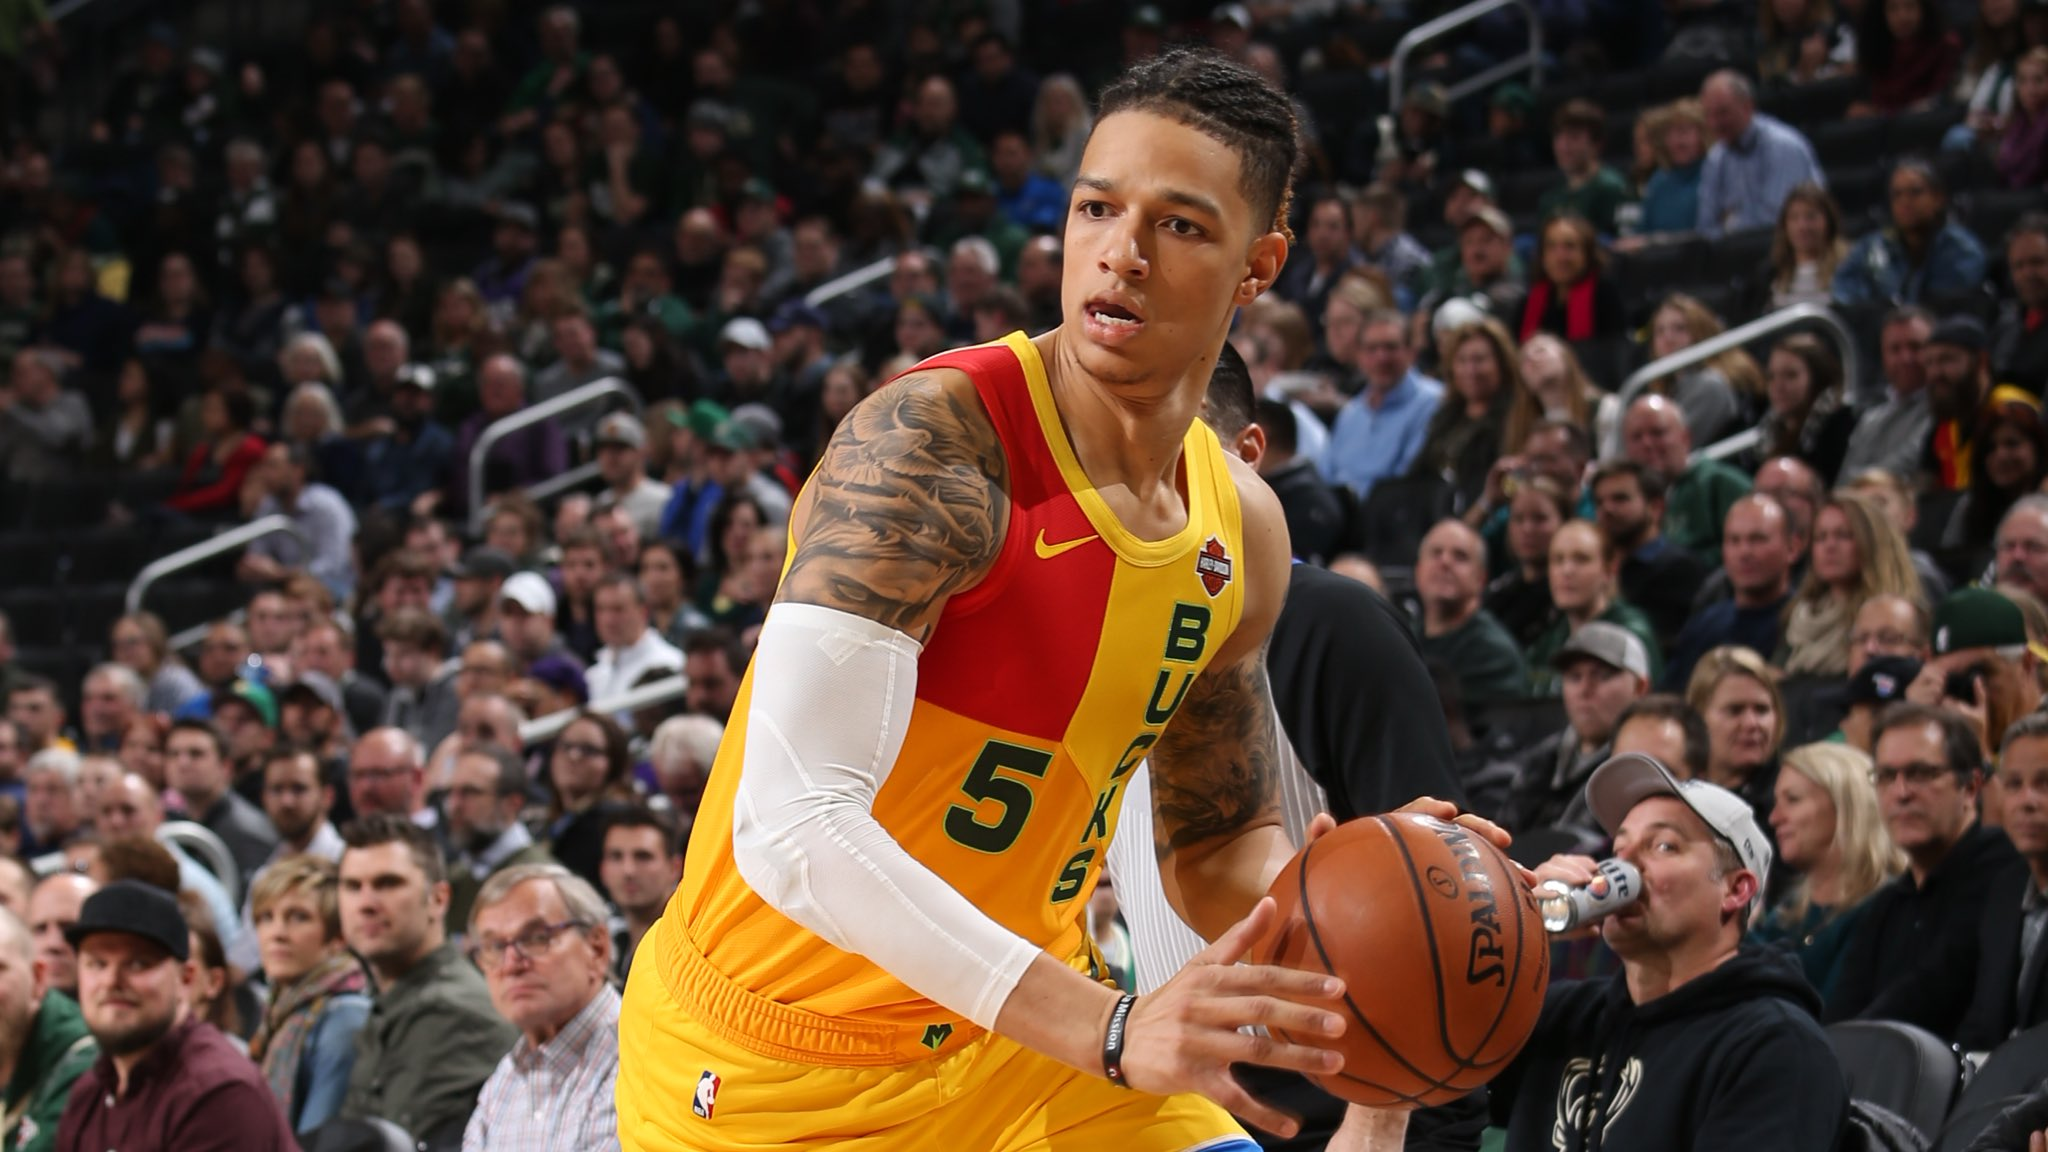 f22b213ce25 The Bucks have assigned D.J. Wilson to the  WisconsinHerd. The Herd begins  a two-game road trip tomorrow when it takes on the Greensboro Swarm at 12